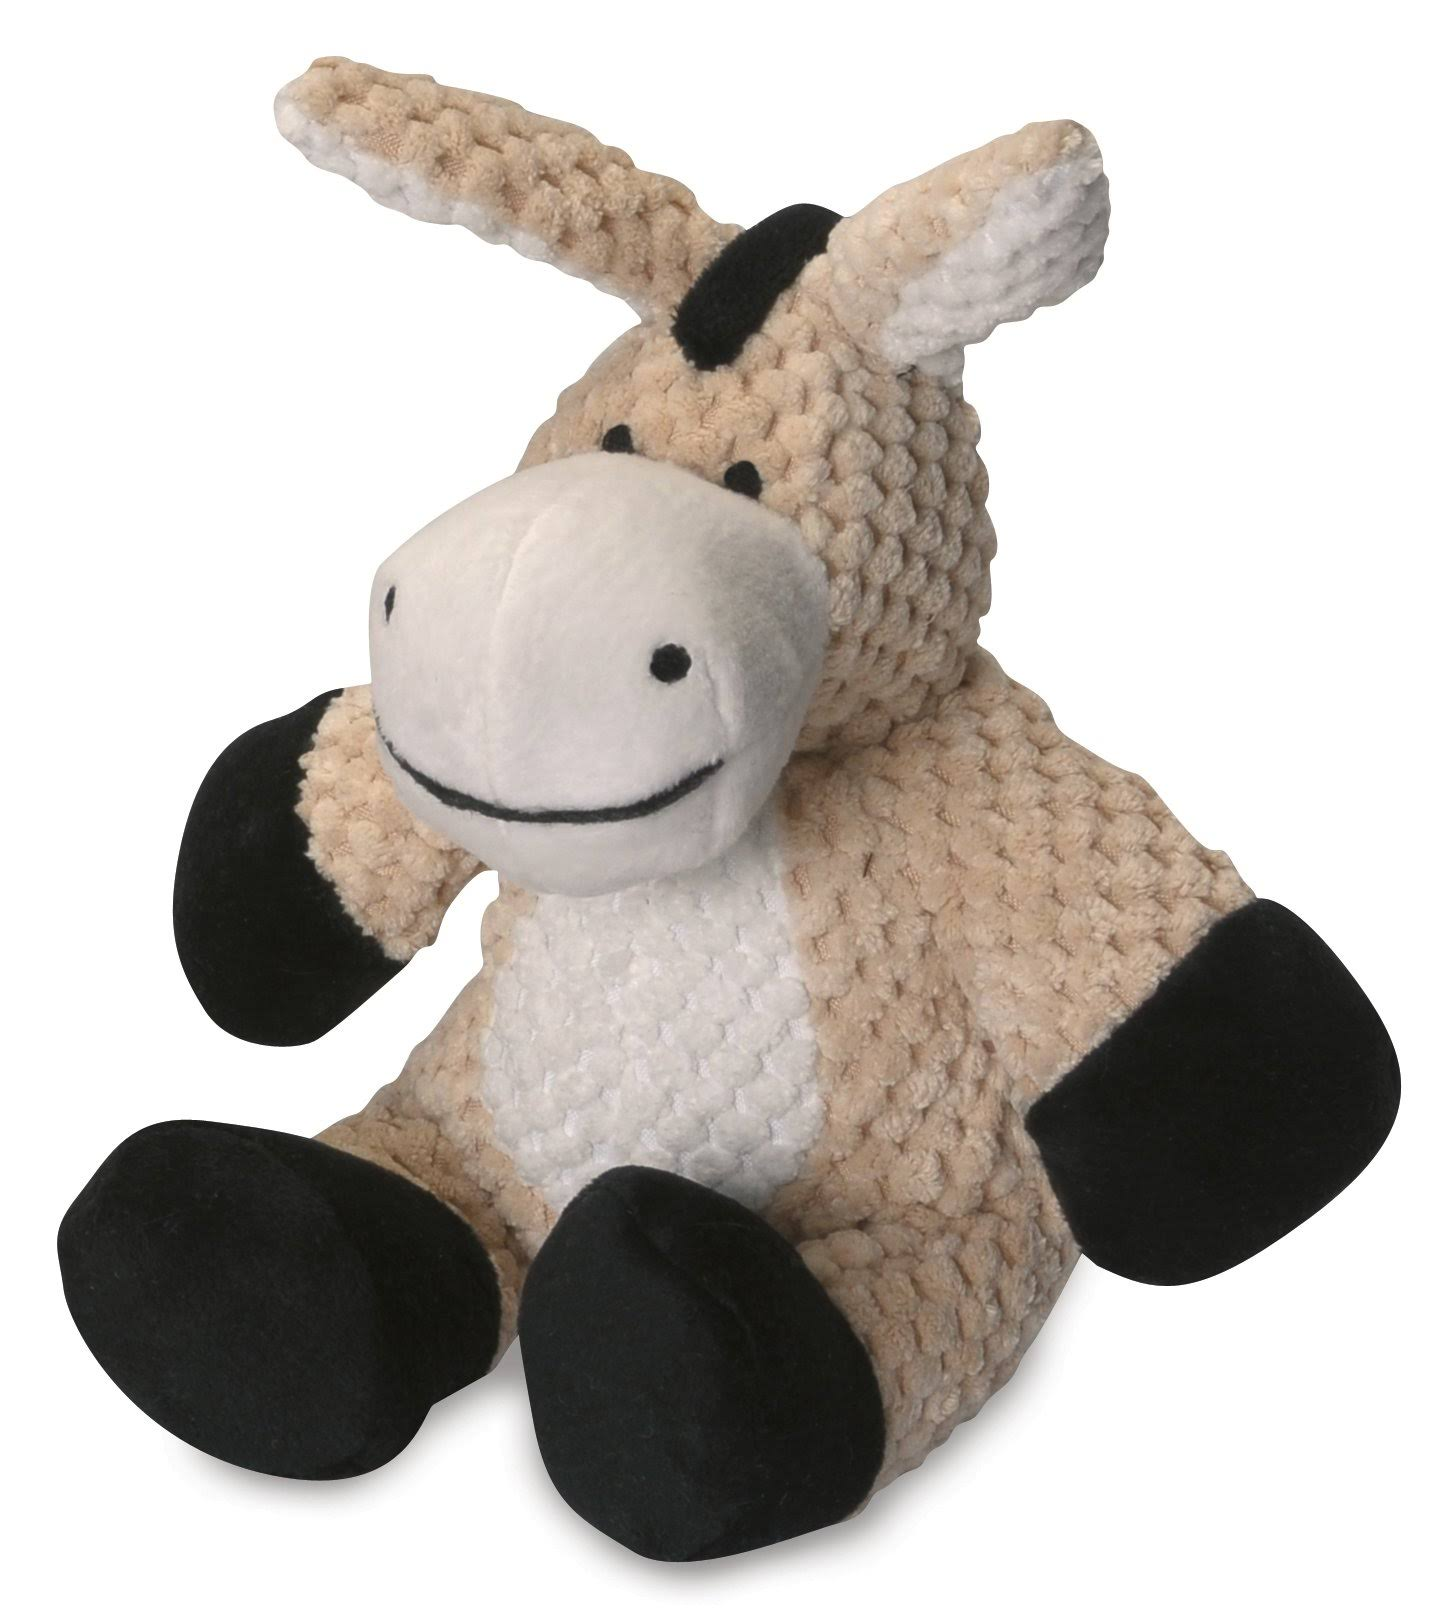 goDog Checkers with Chew Guard Technology Tough Plush Dog Toy - Donkey